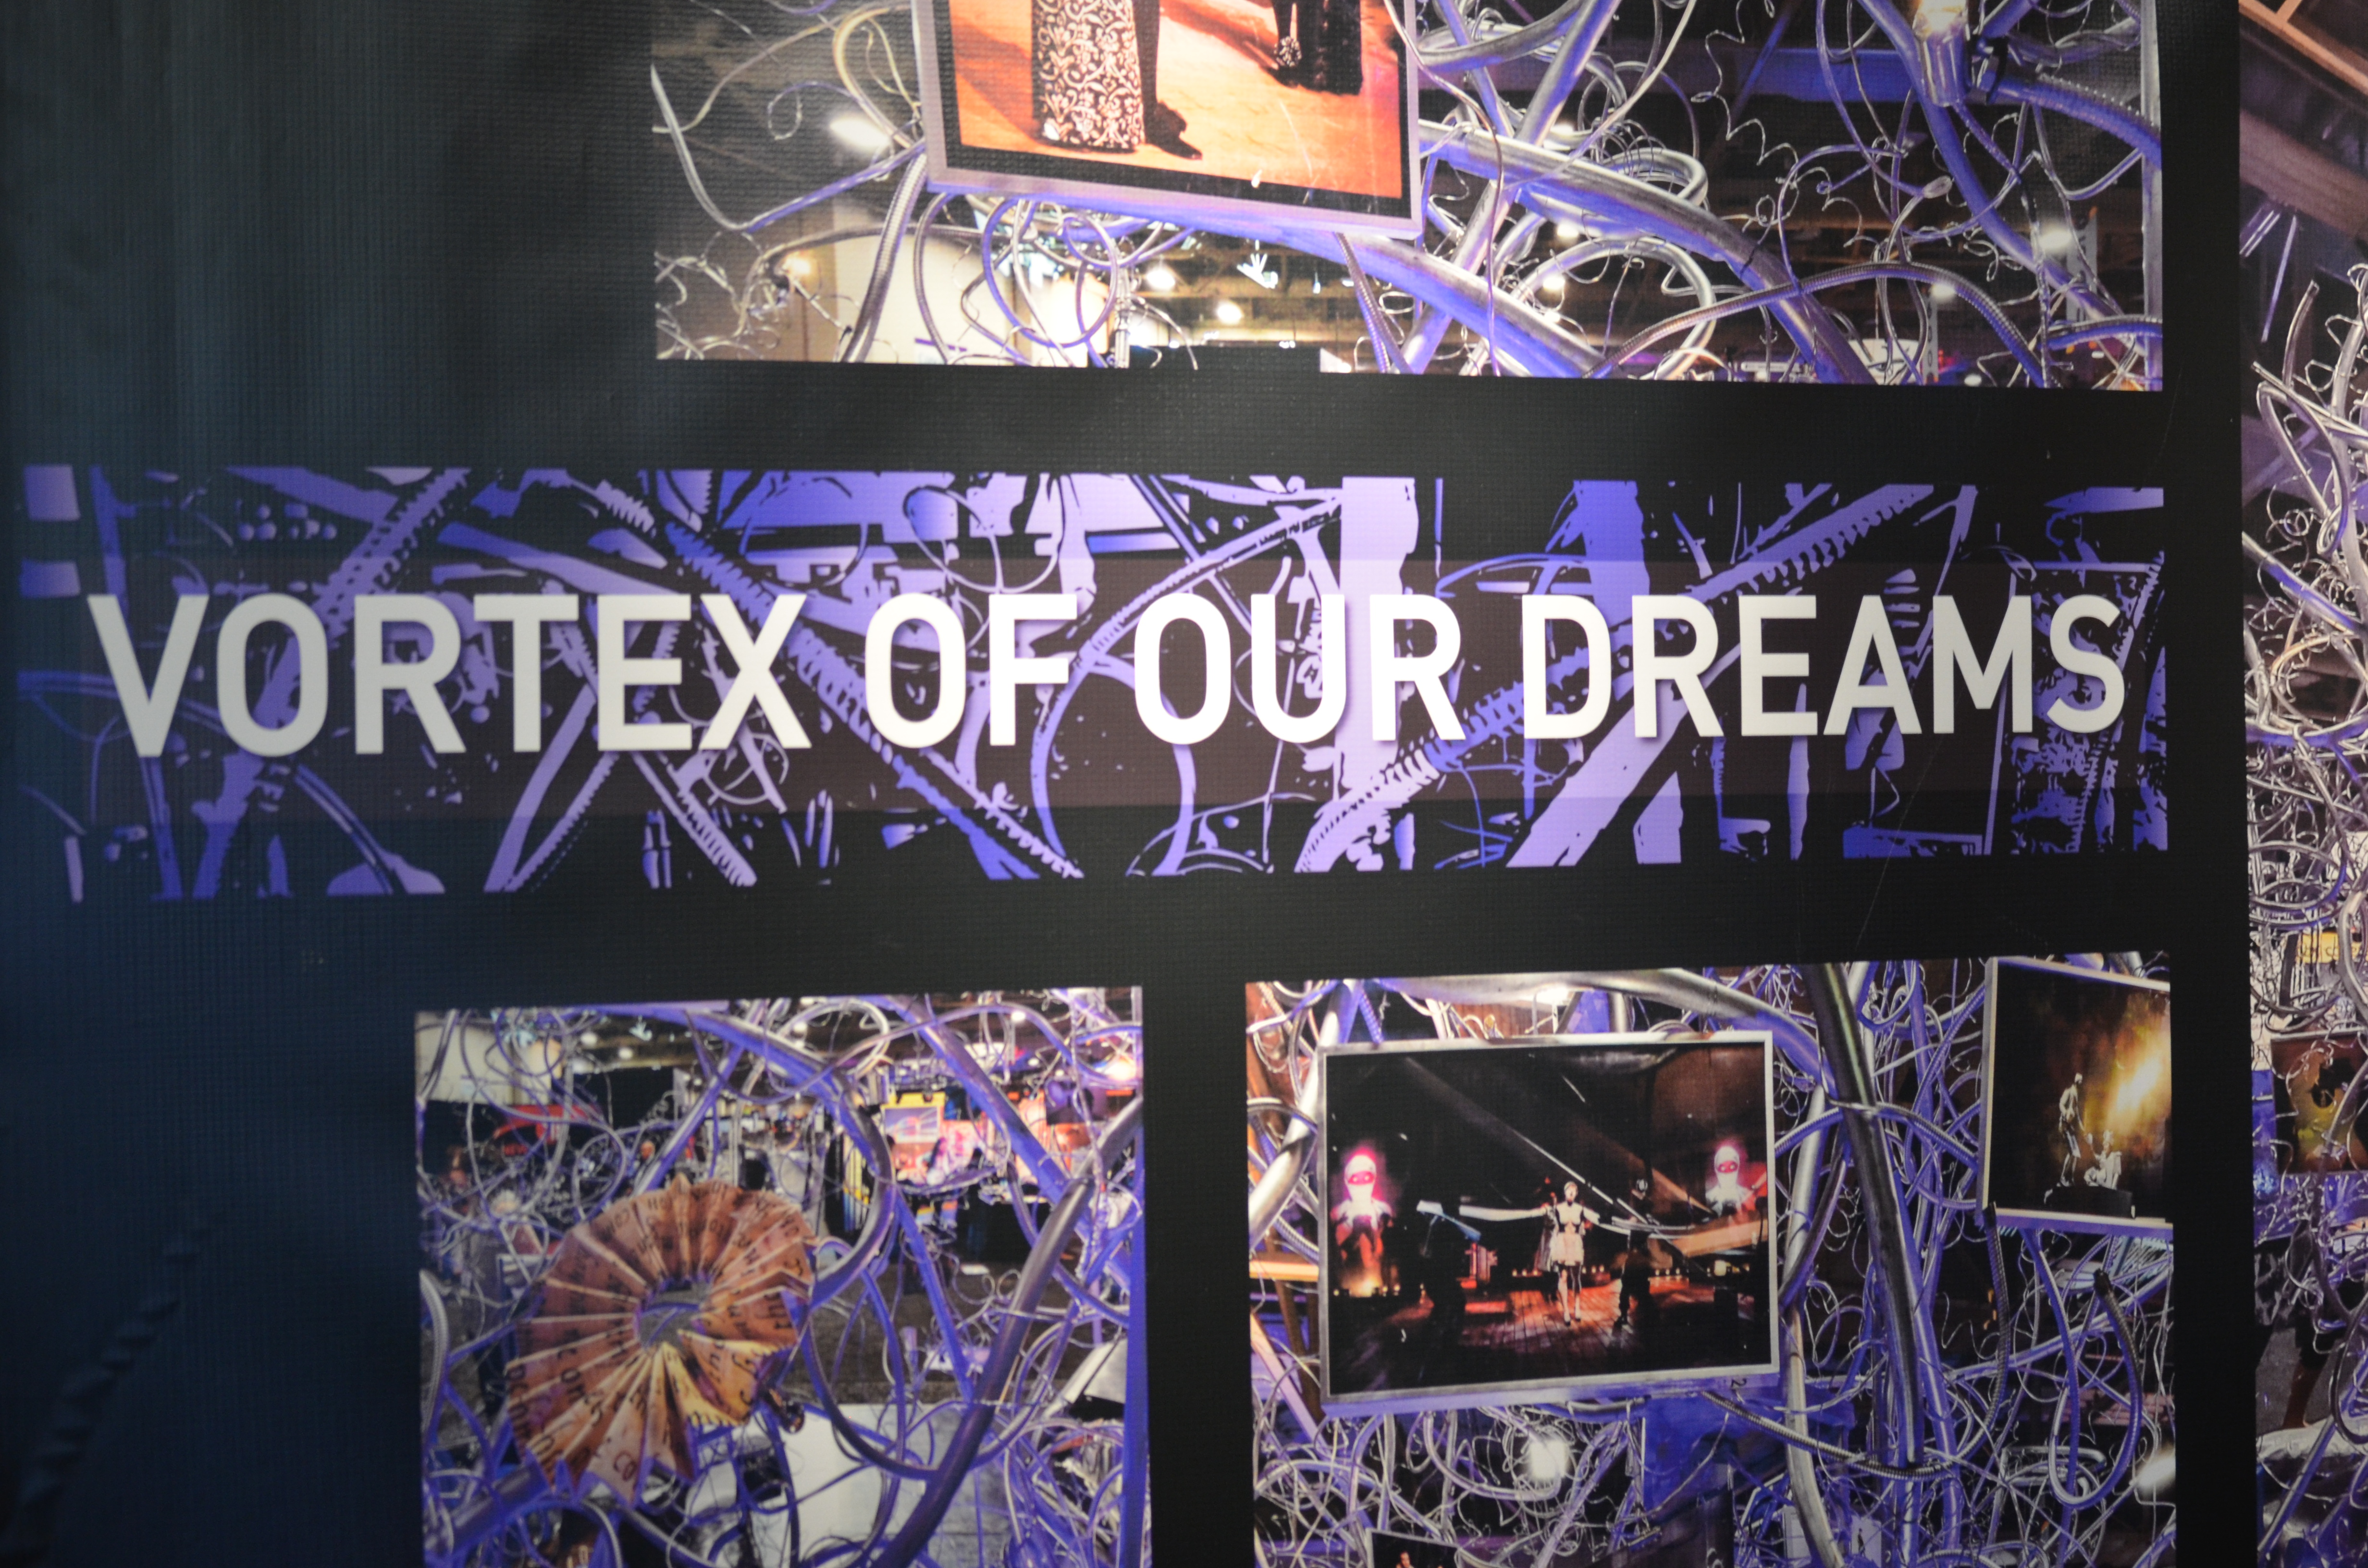 Vortex of Our Dreams Poster